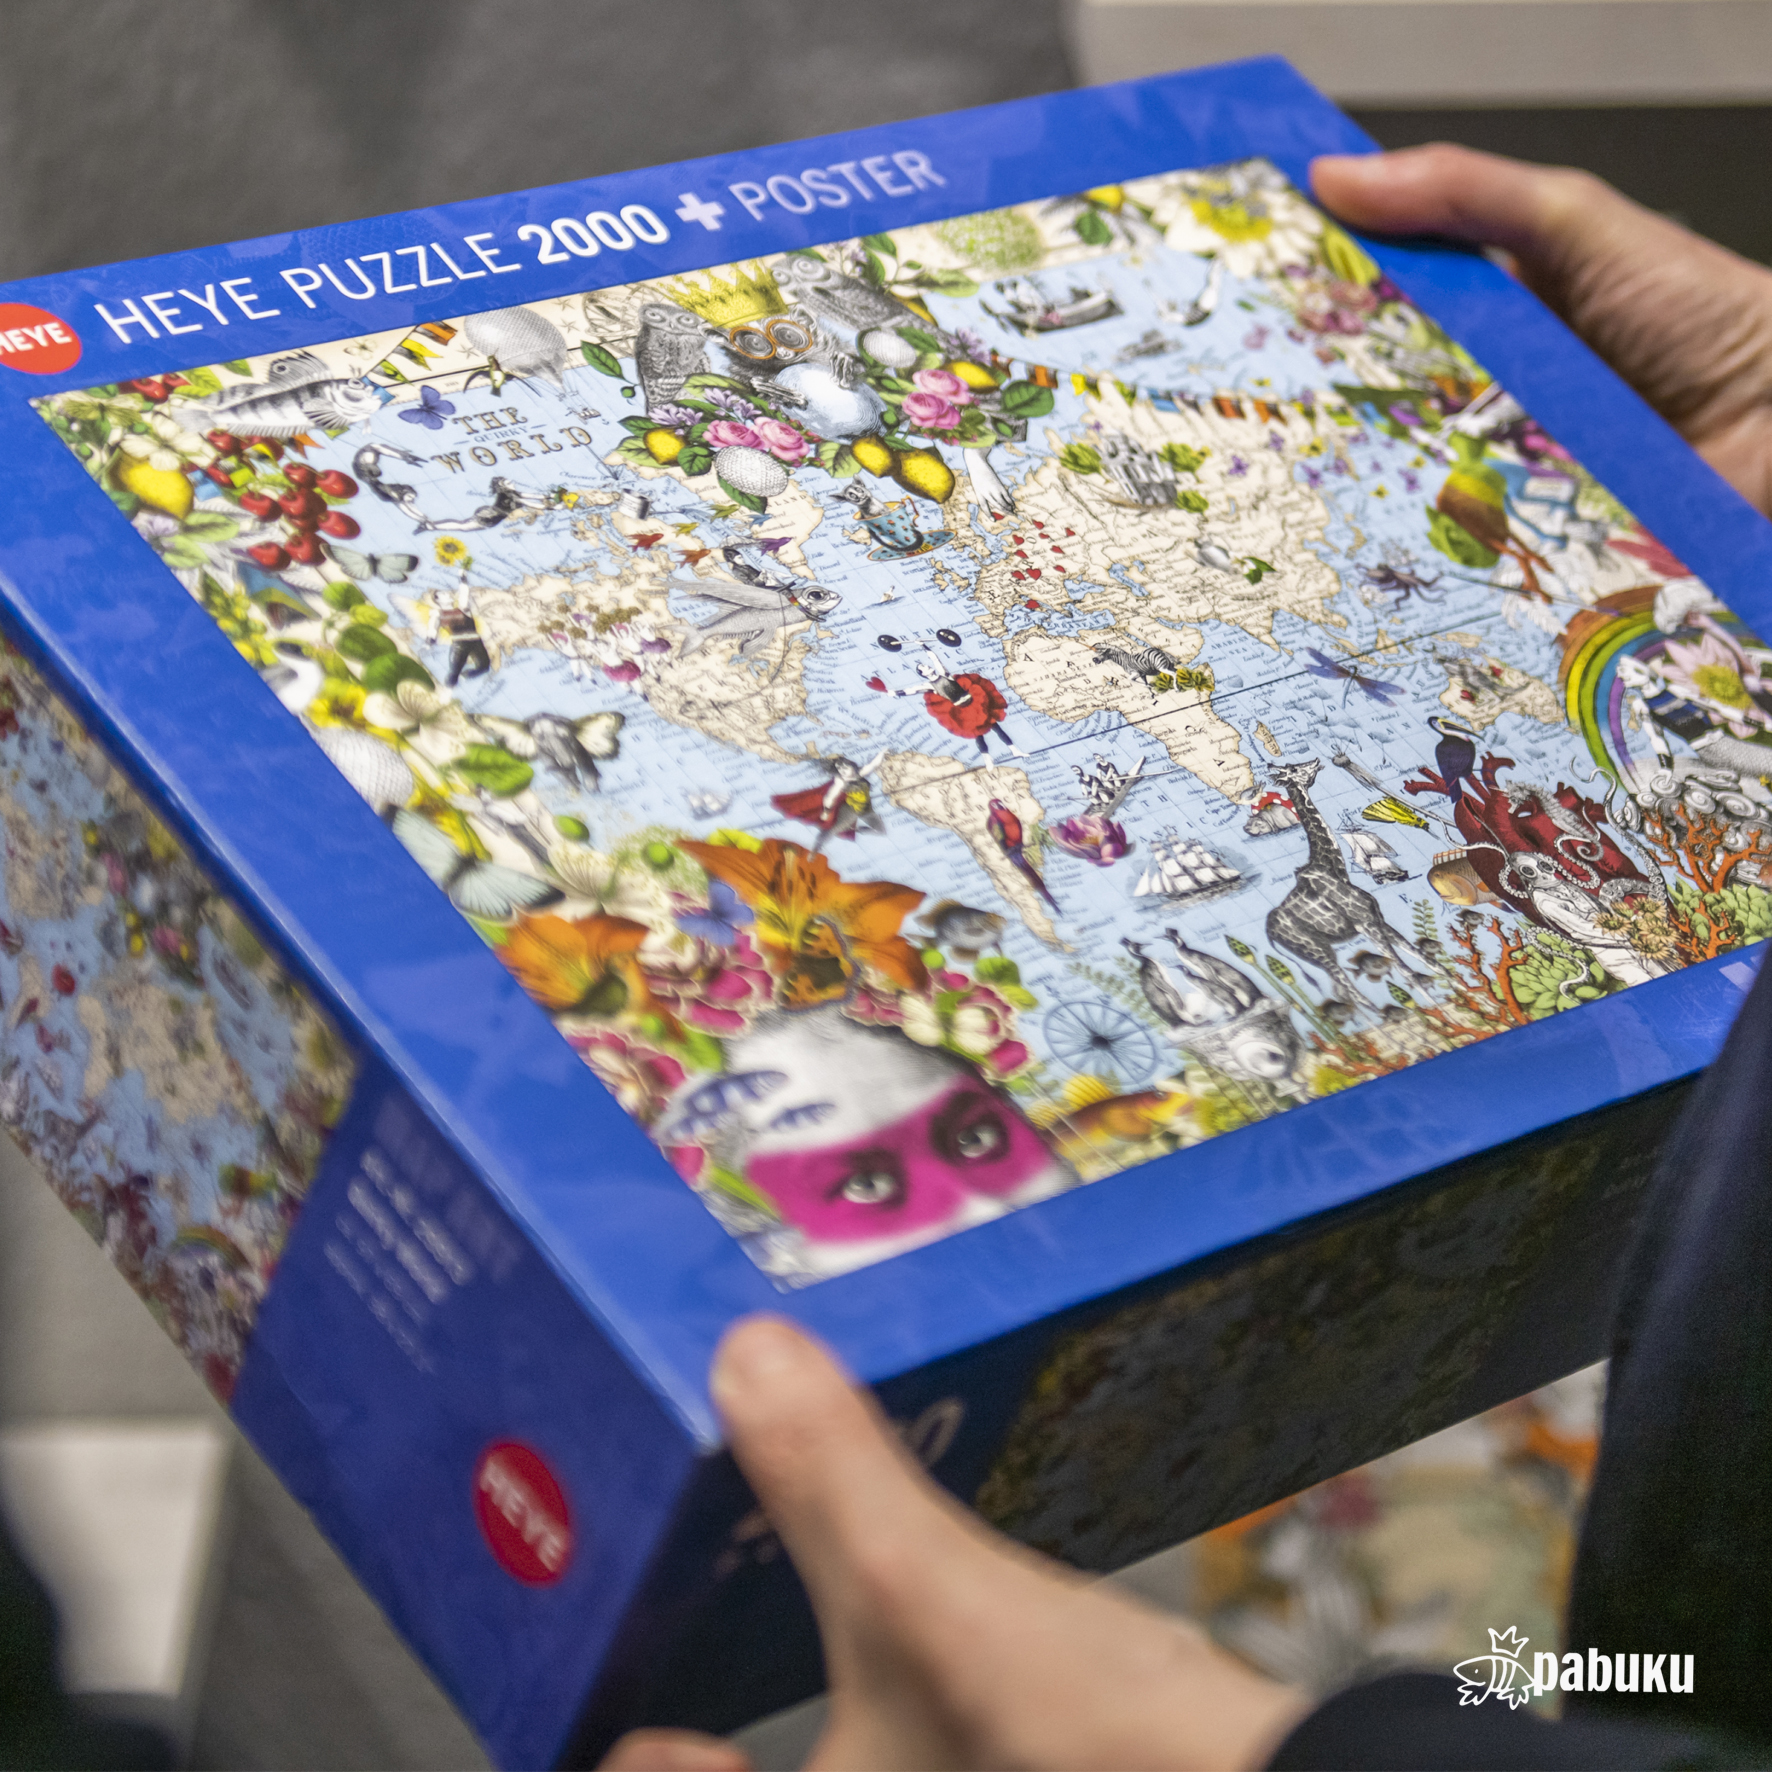 Above: While card sales may have stalled, the popularity of jigsaws, such as Pabuku's The Quirky World, has soared.